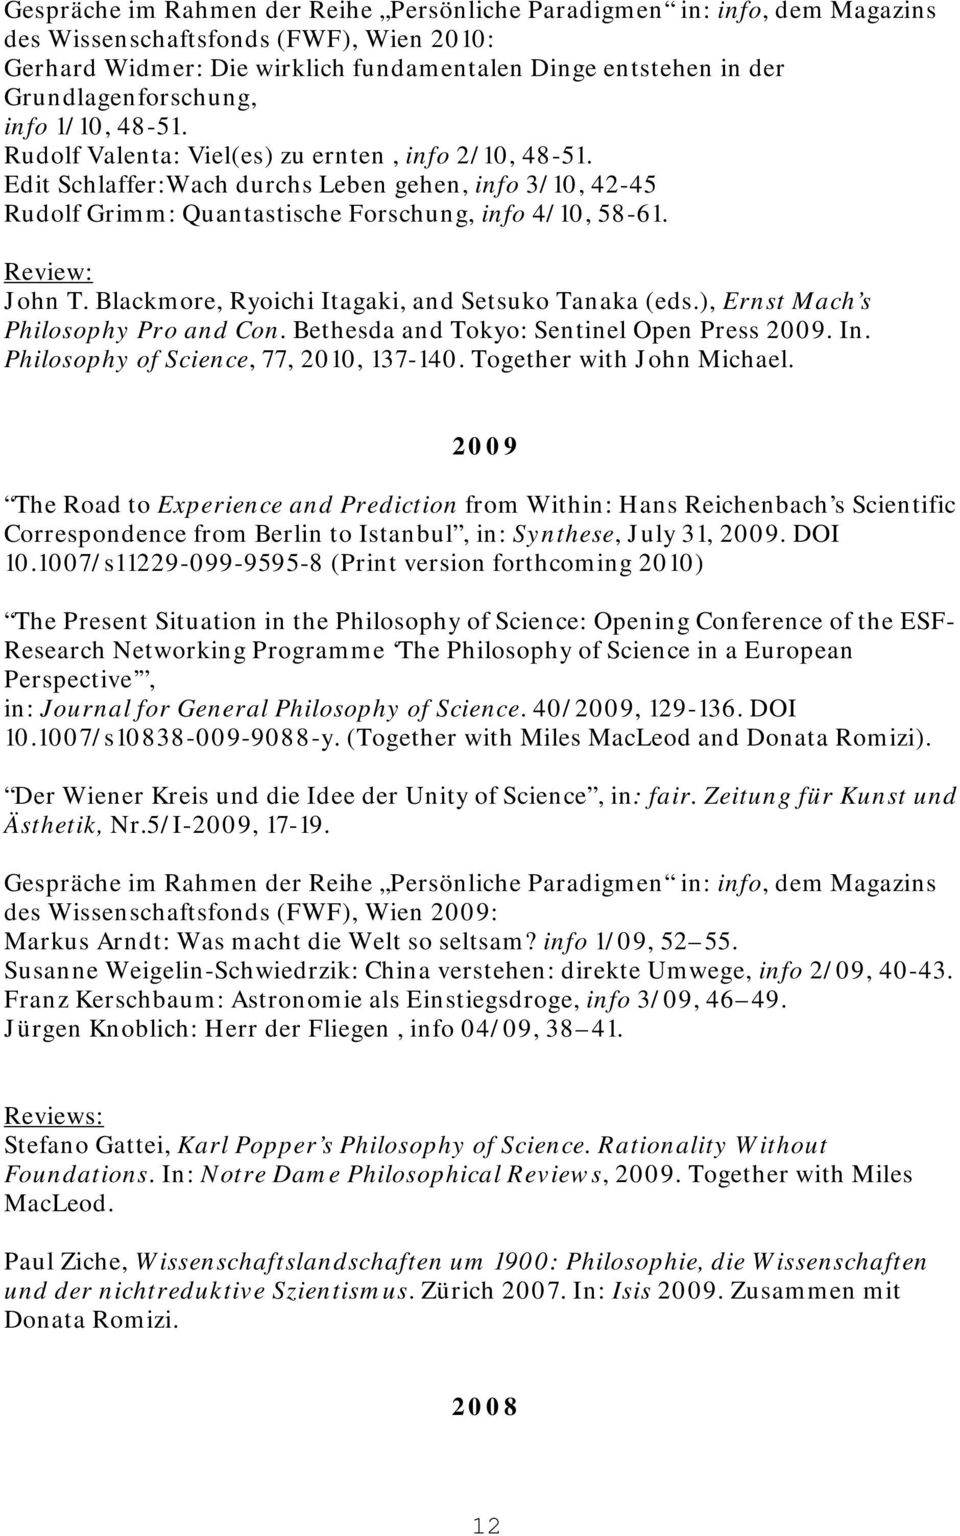 CURRICULUM VITAE (Long Version) Current as of January FRIEDRICH ...